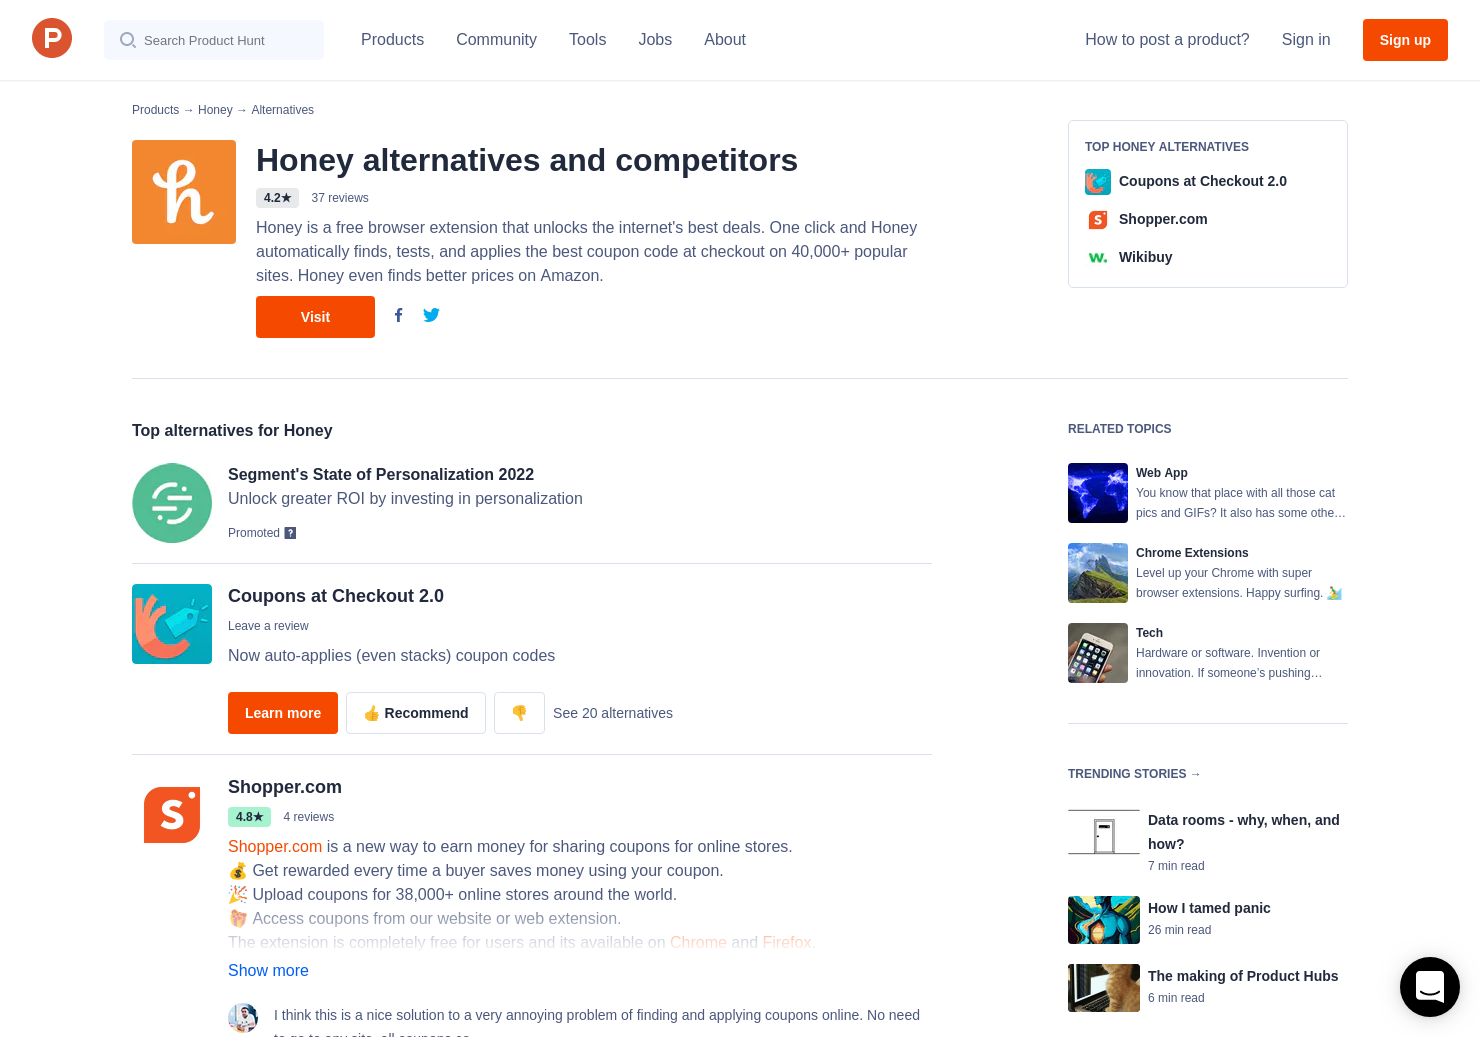 21 Alternatives to Honey for Chrome Extensions | Product Hunt